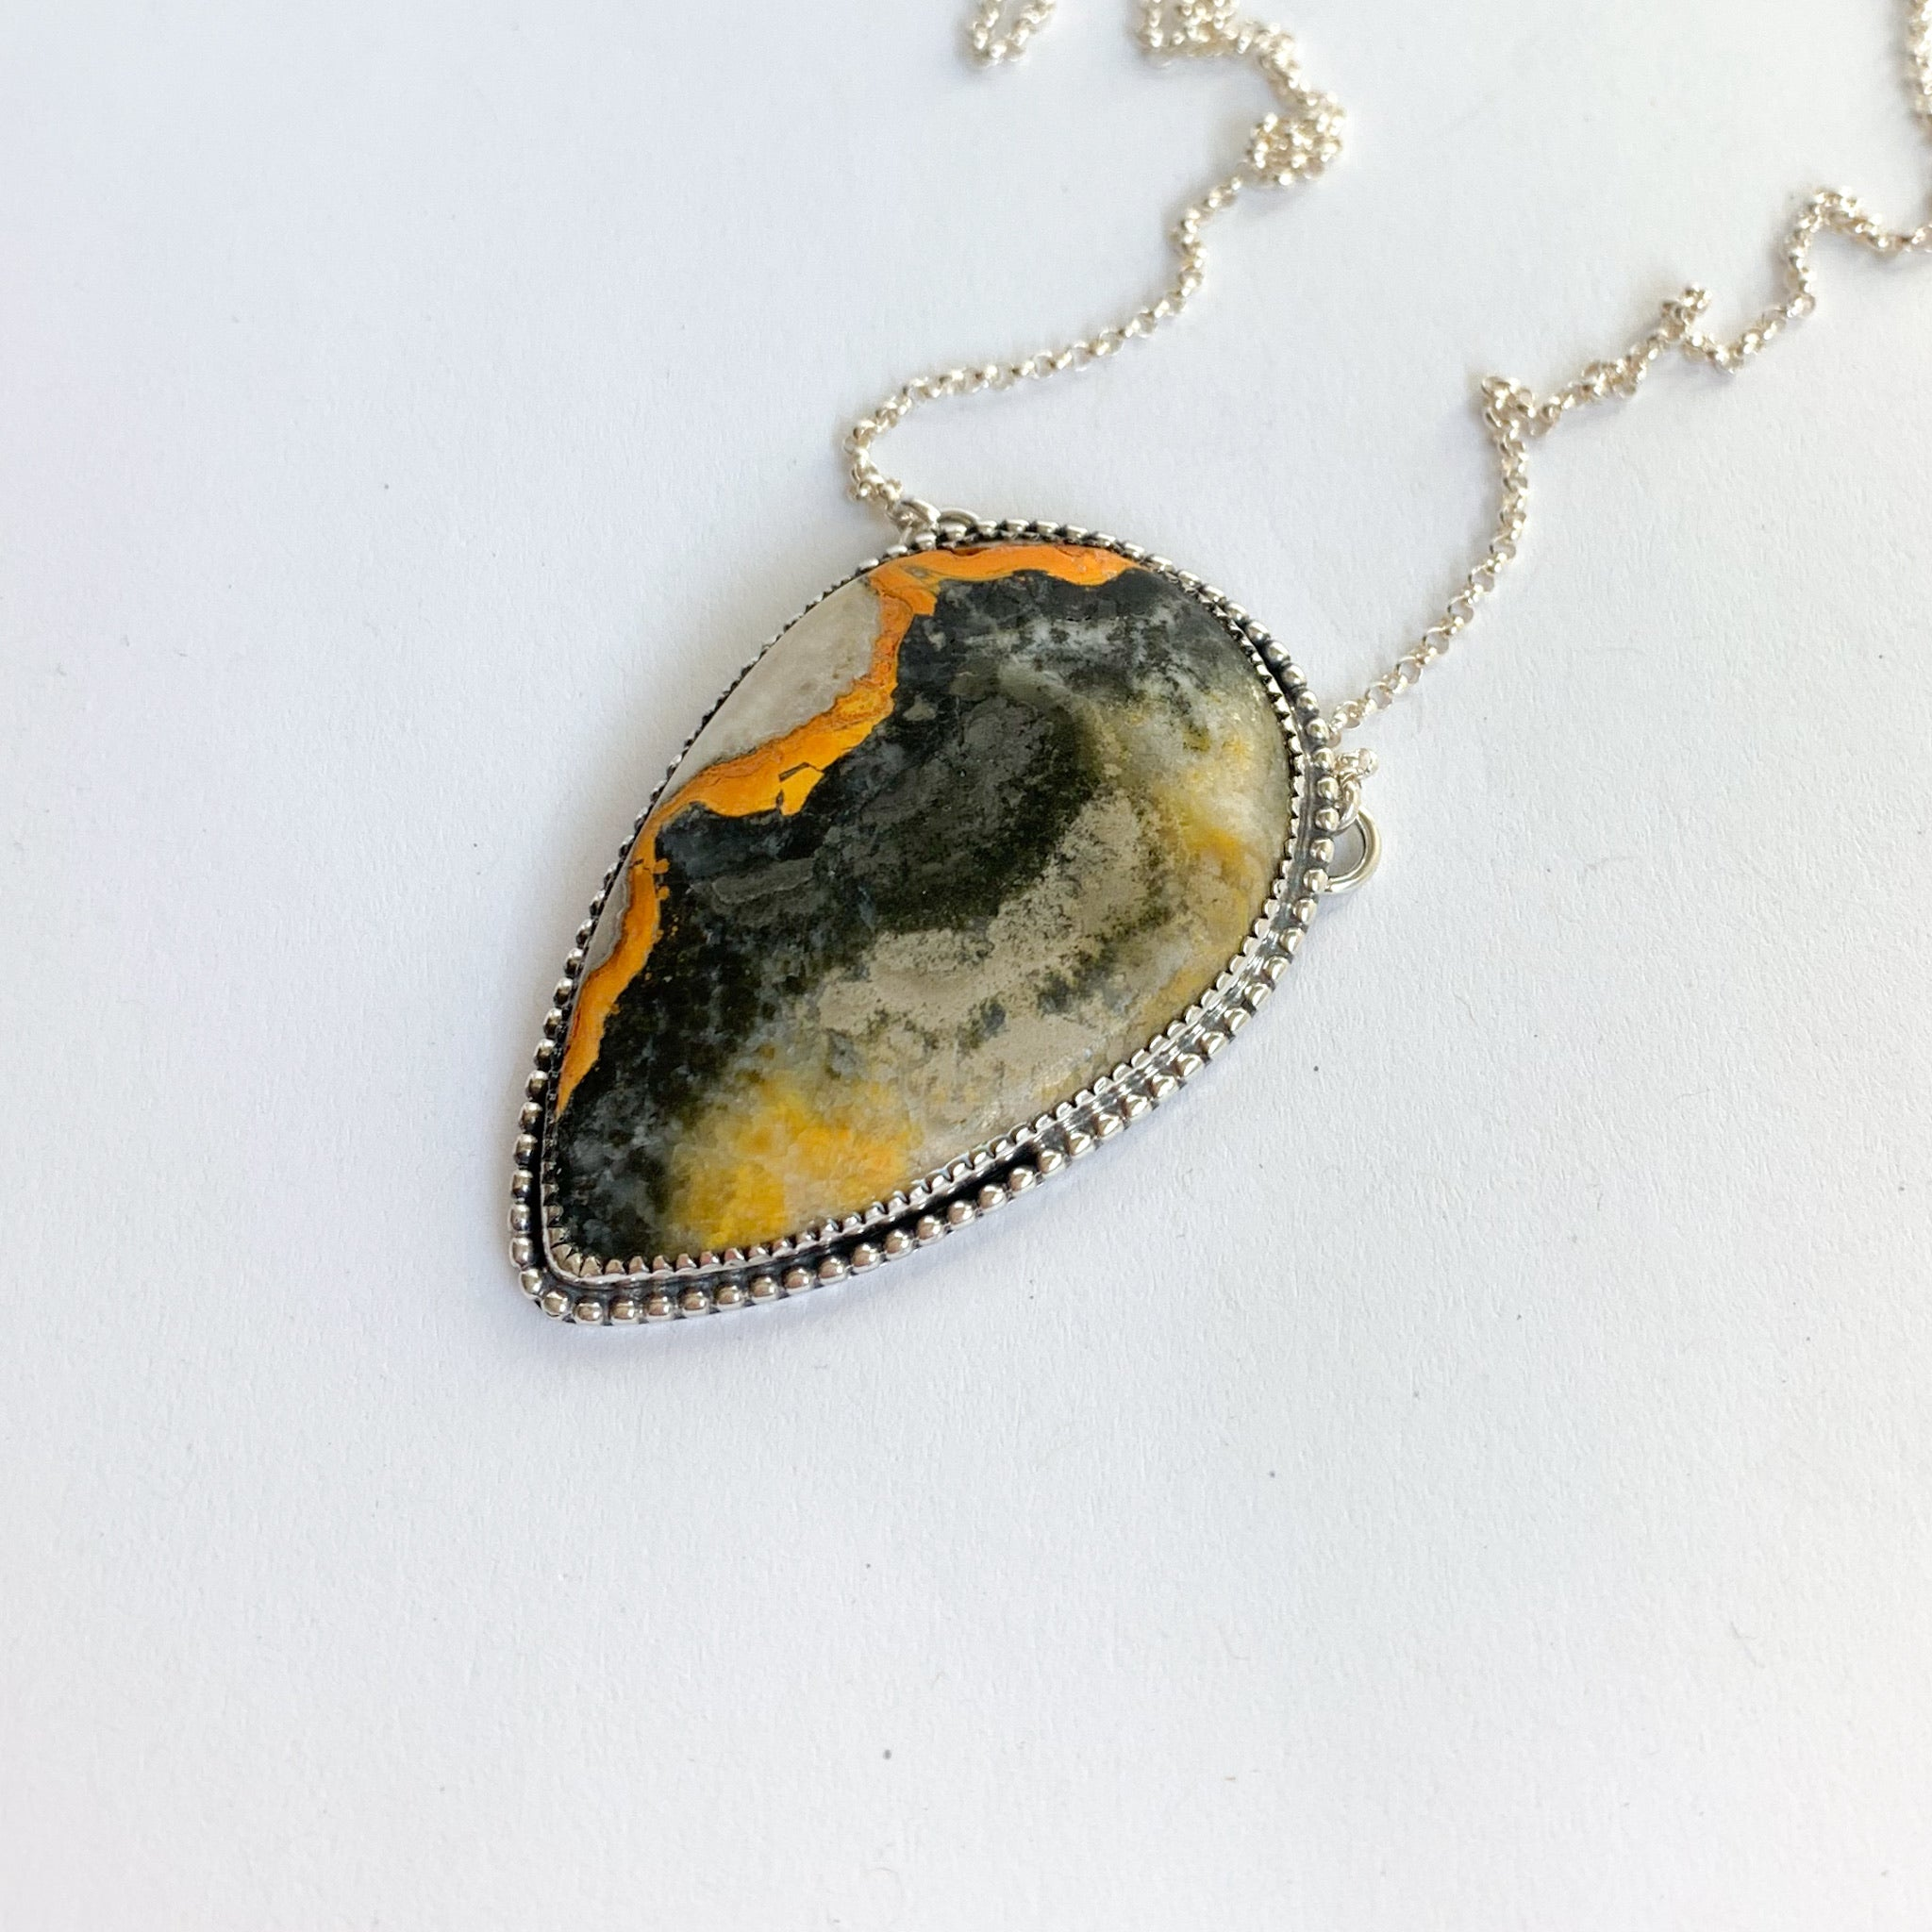 Bumblebee jasper necklace - silver